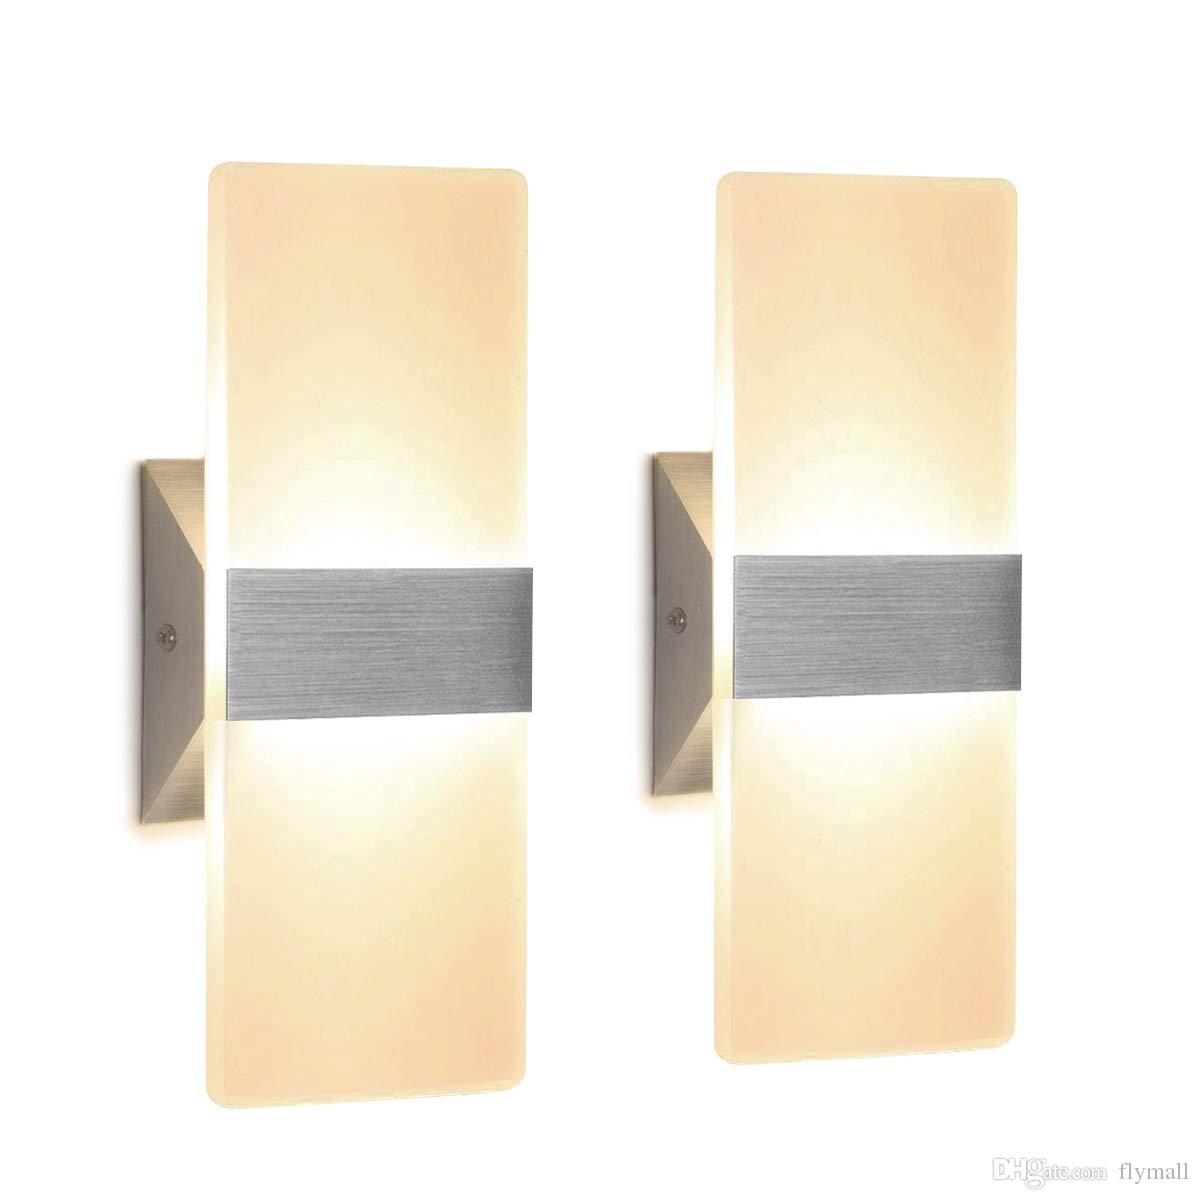 Image of: 2020 Modern Wall Sconce 12w Up Down Wall Lamp Acrylic Wall Mounted Lights For Bedroom Corridor Stairs Bathroom Indoor Lighting Fixture Lamps From Flymall 16 75 Dhgate Com